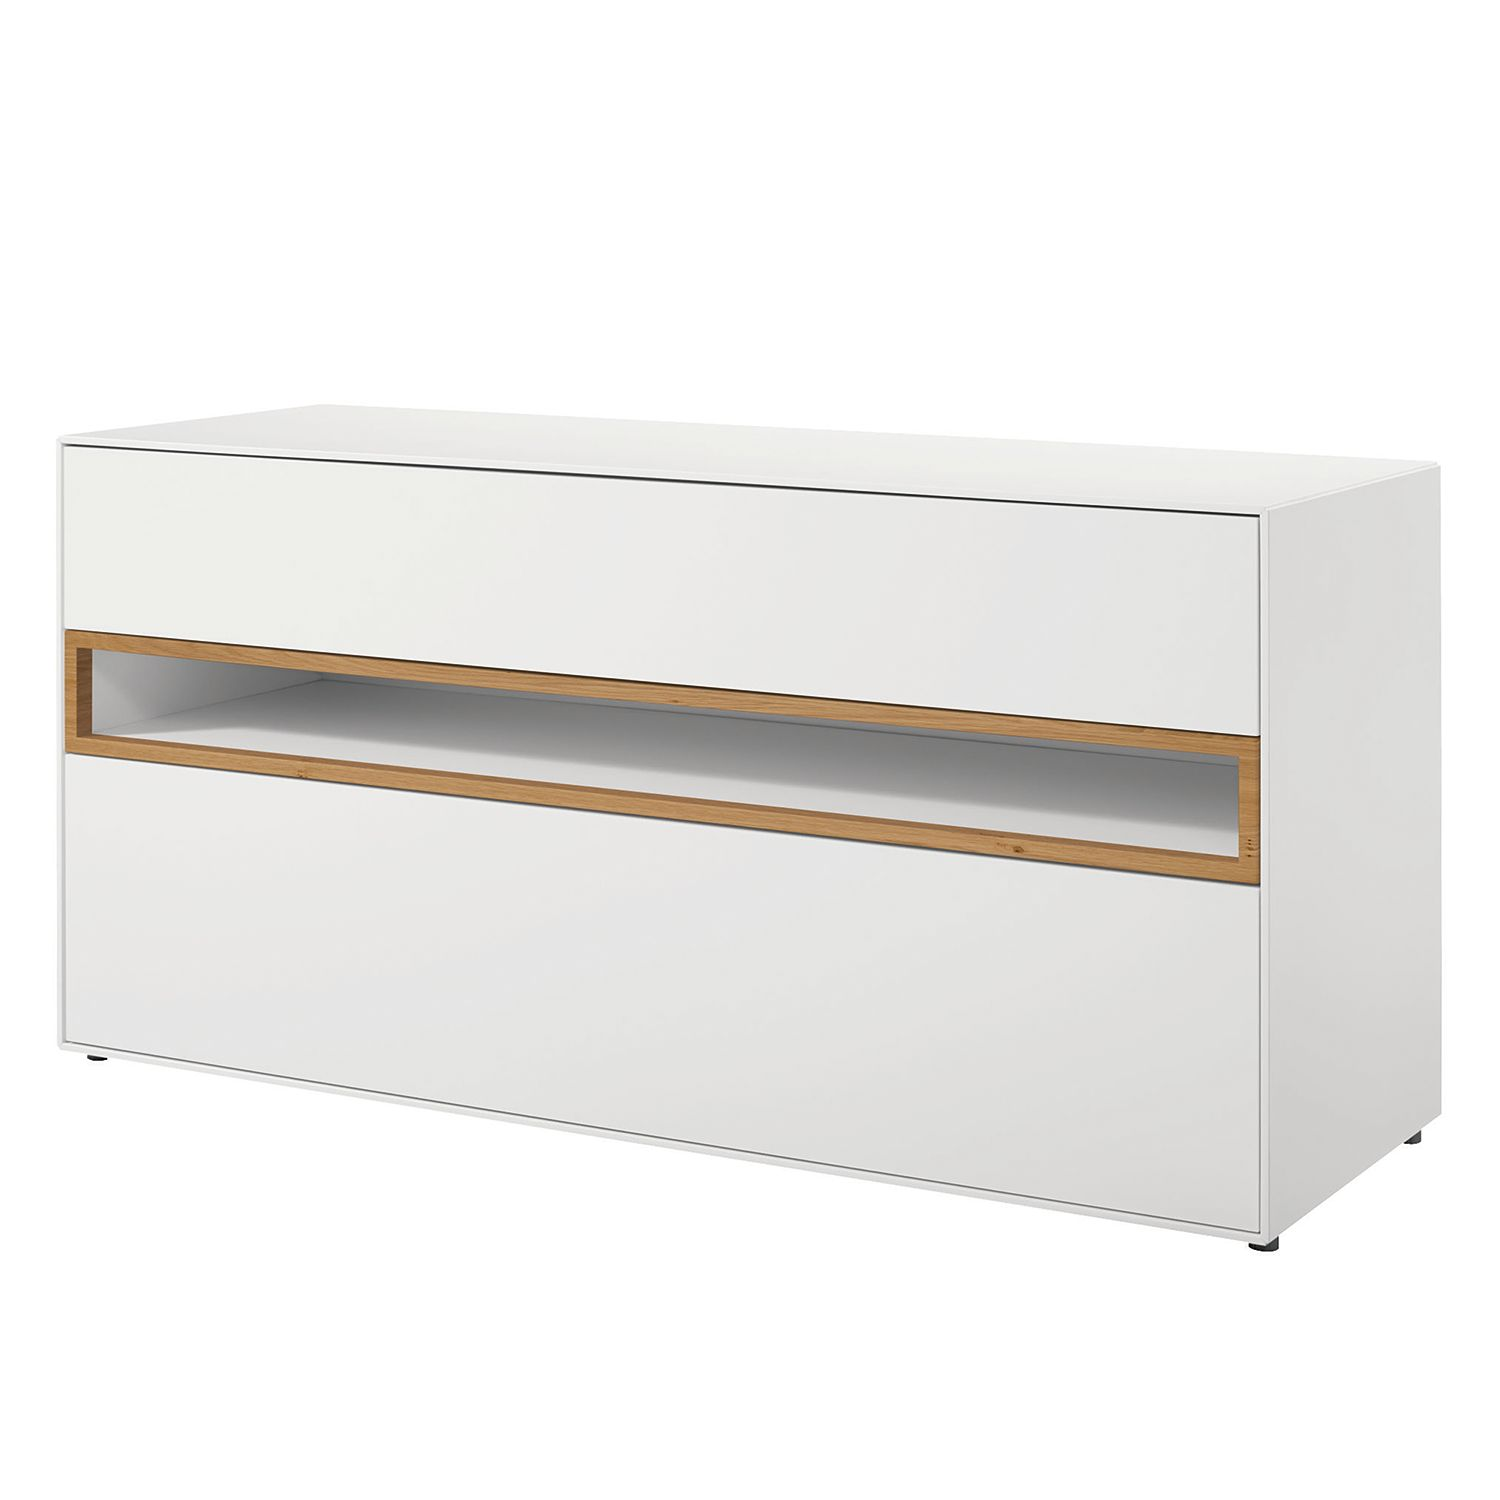 Sideboard hülsta now easy III